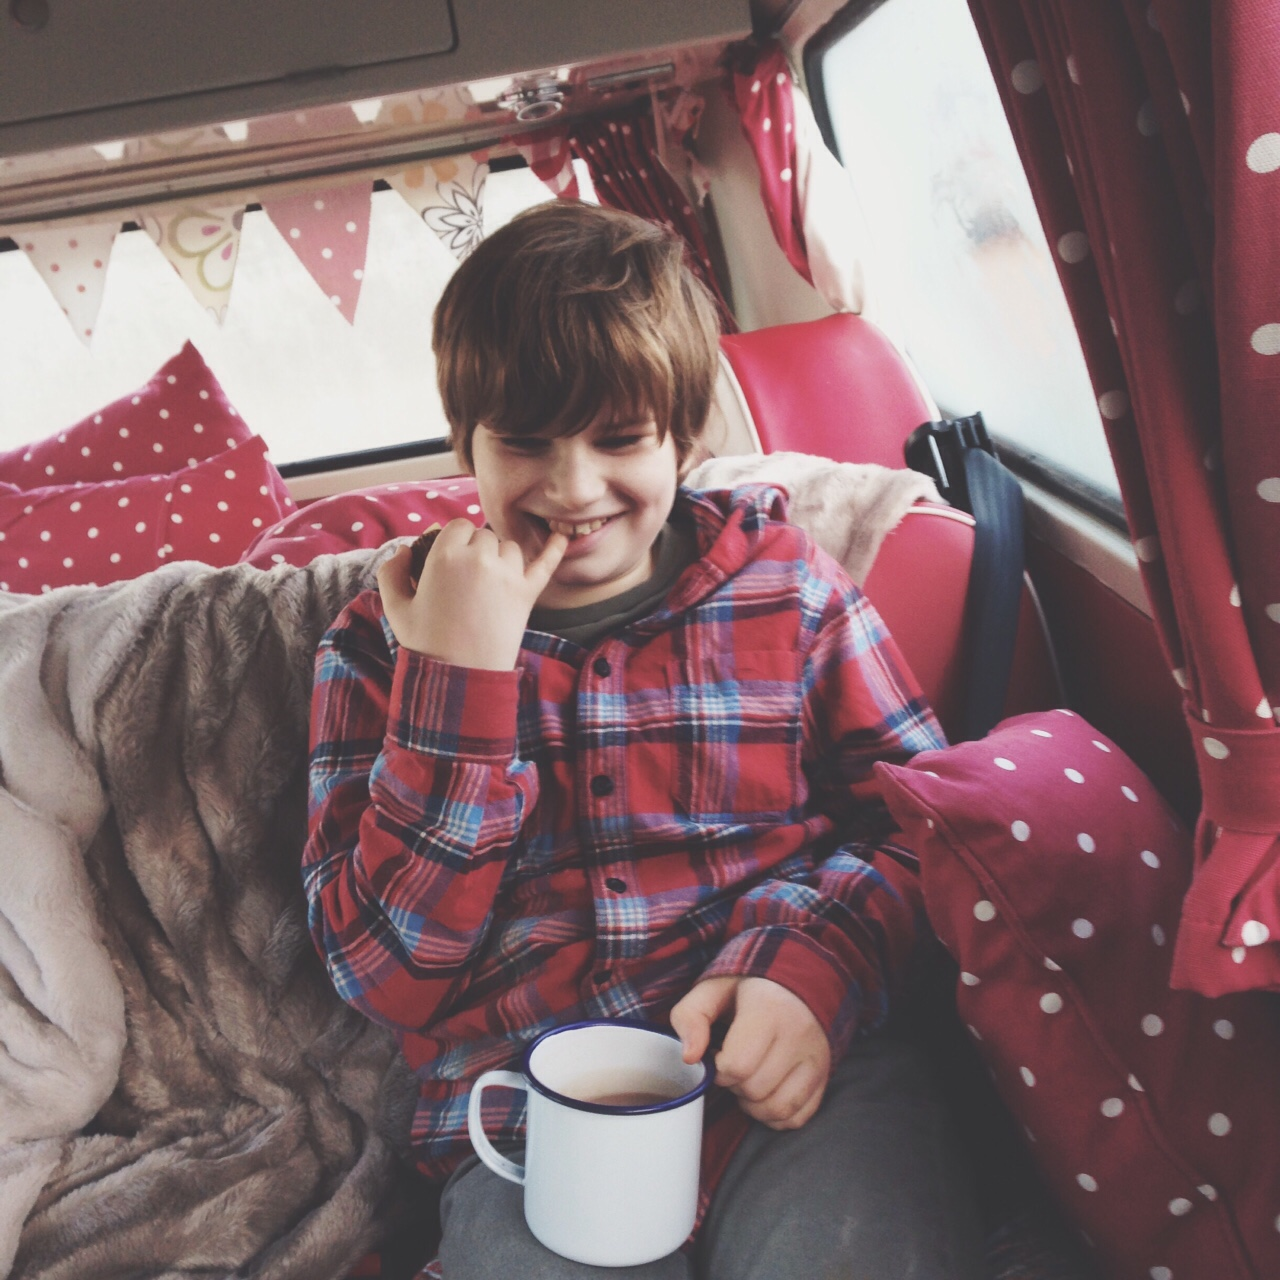 A sunny winter's day calls for campervan hot chocolate and plenty of faux fur blankets to cosy up to